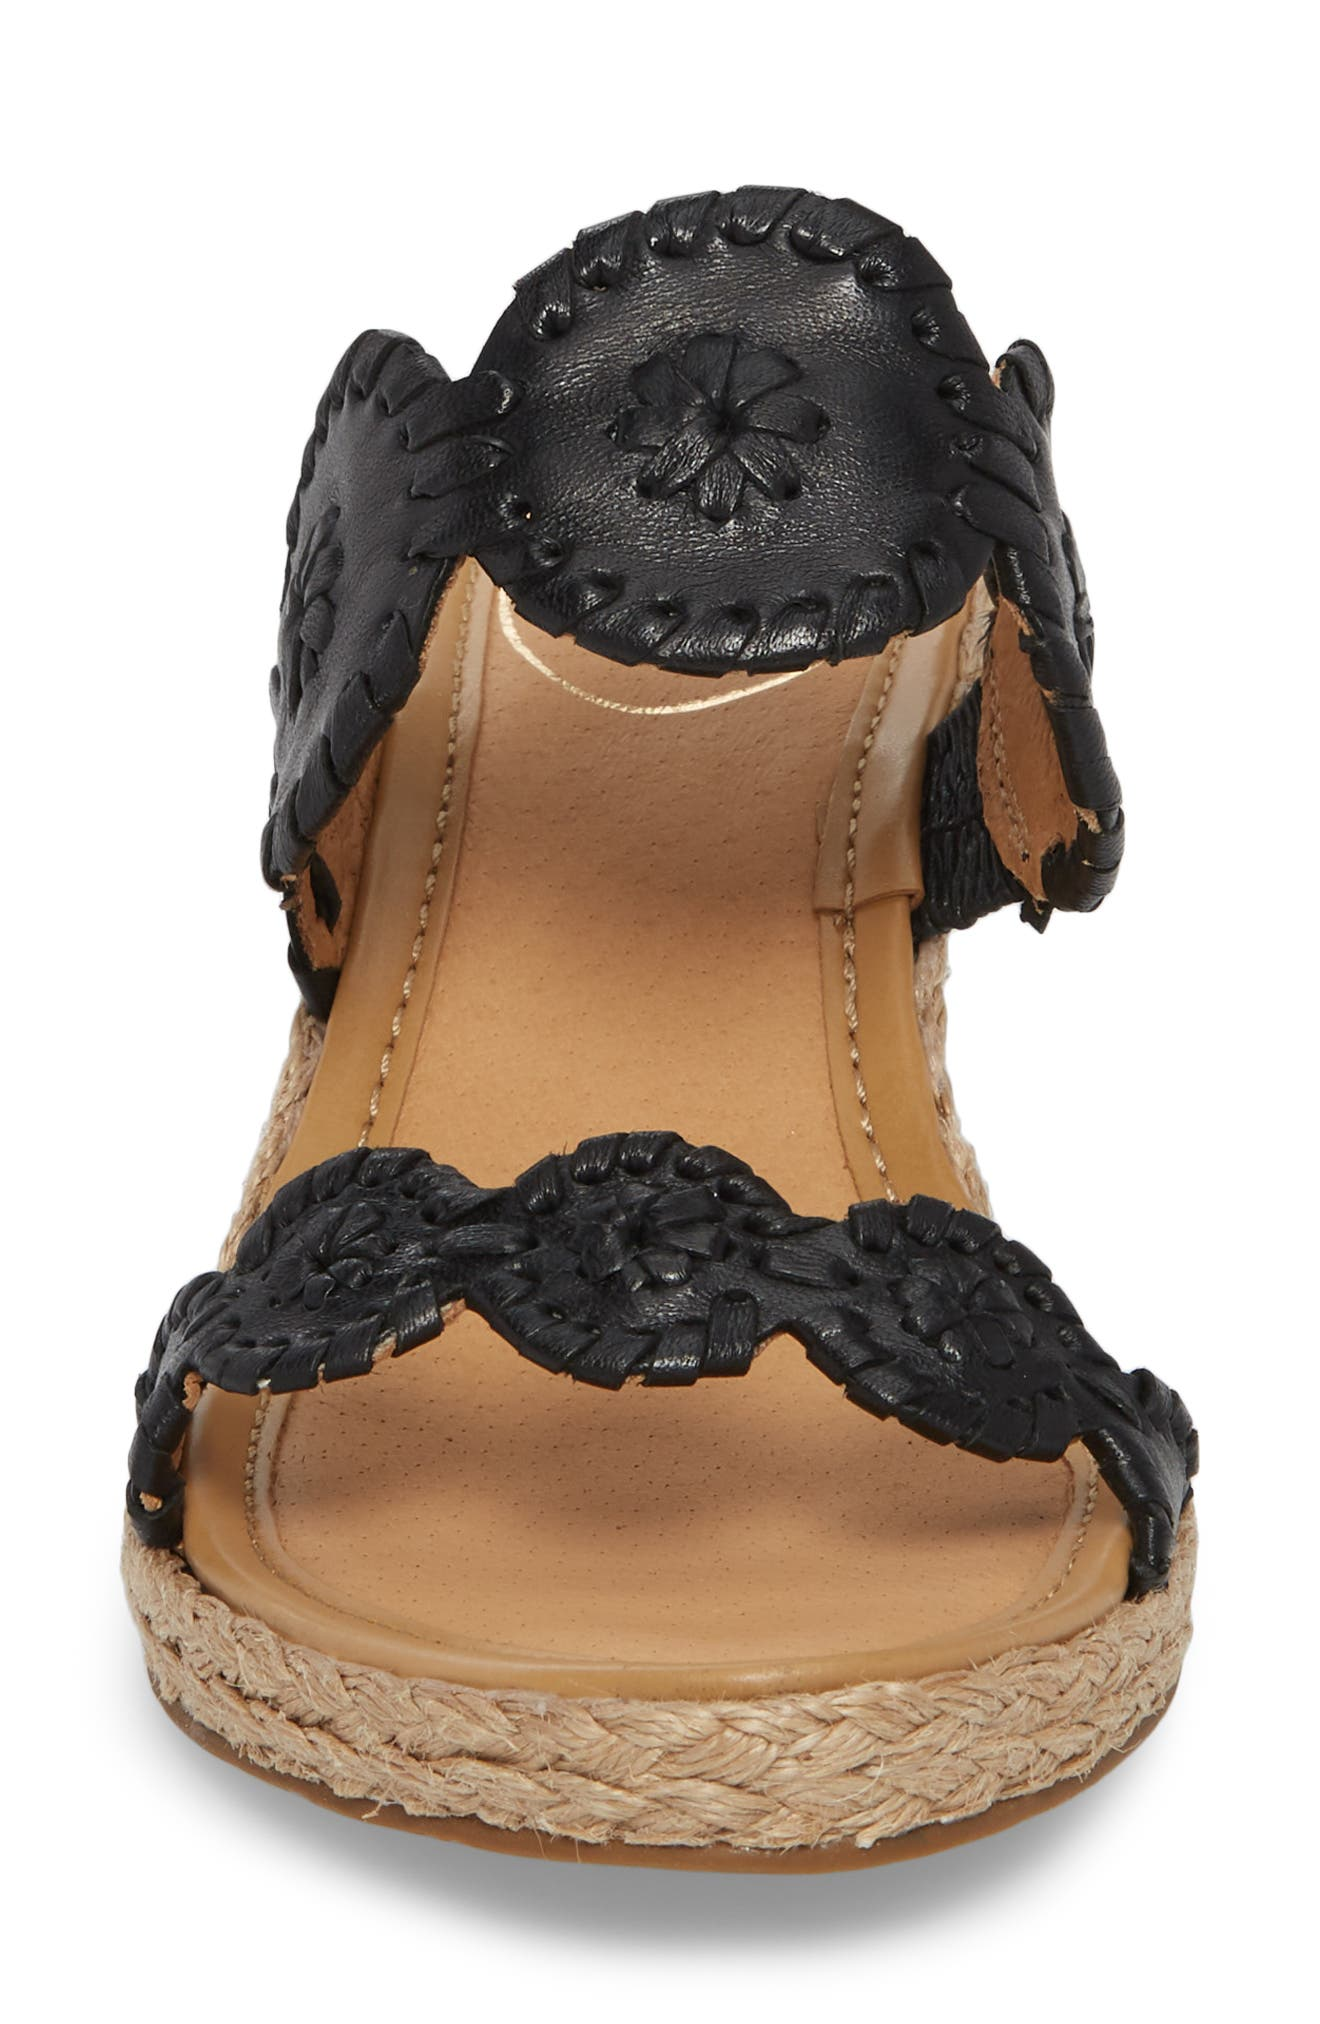 JACK ROGERS, 'Shelby' Whipstitched Wedge Sandal, Alternate thumbnail 4, color, 001